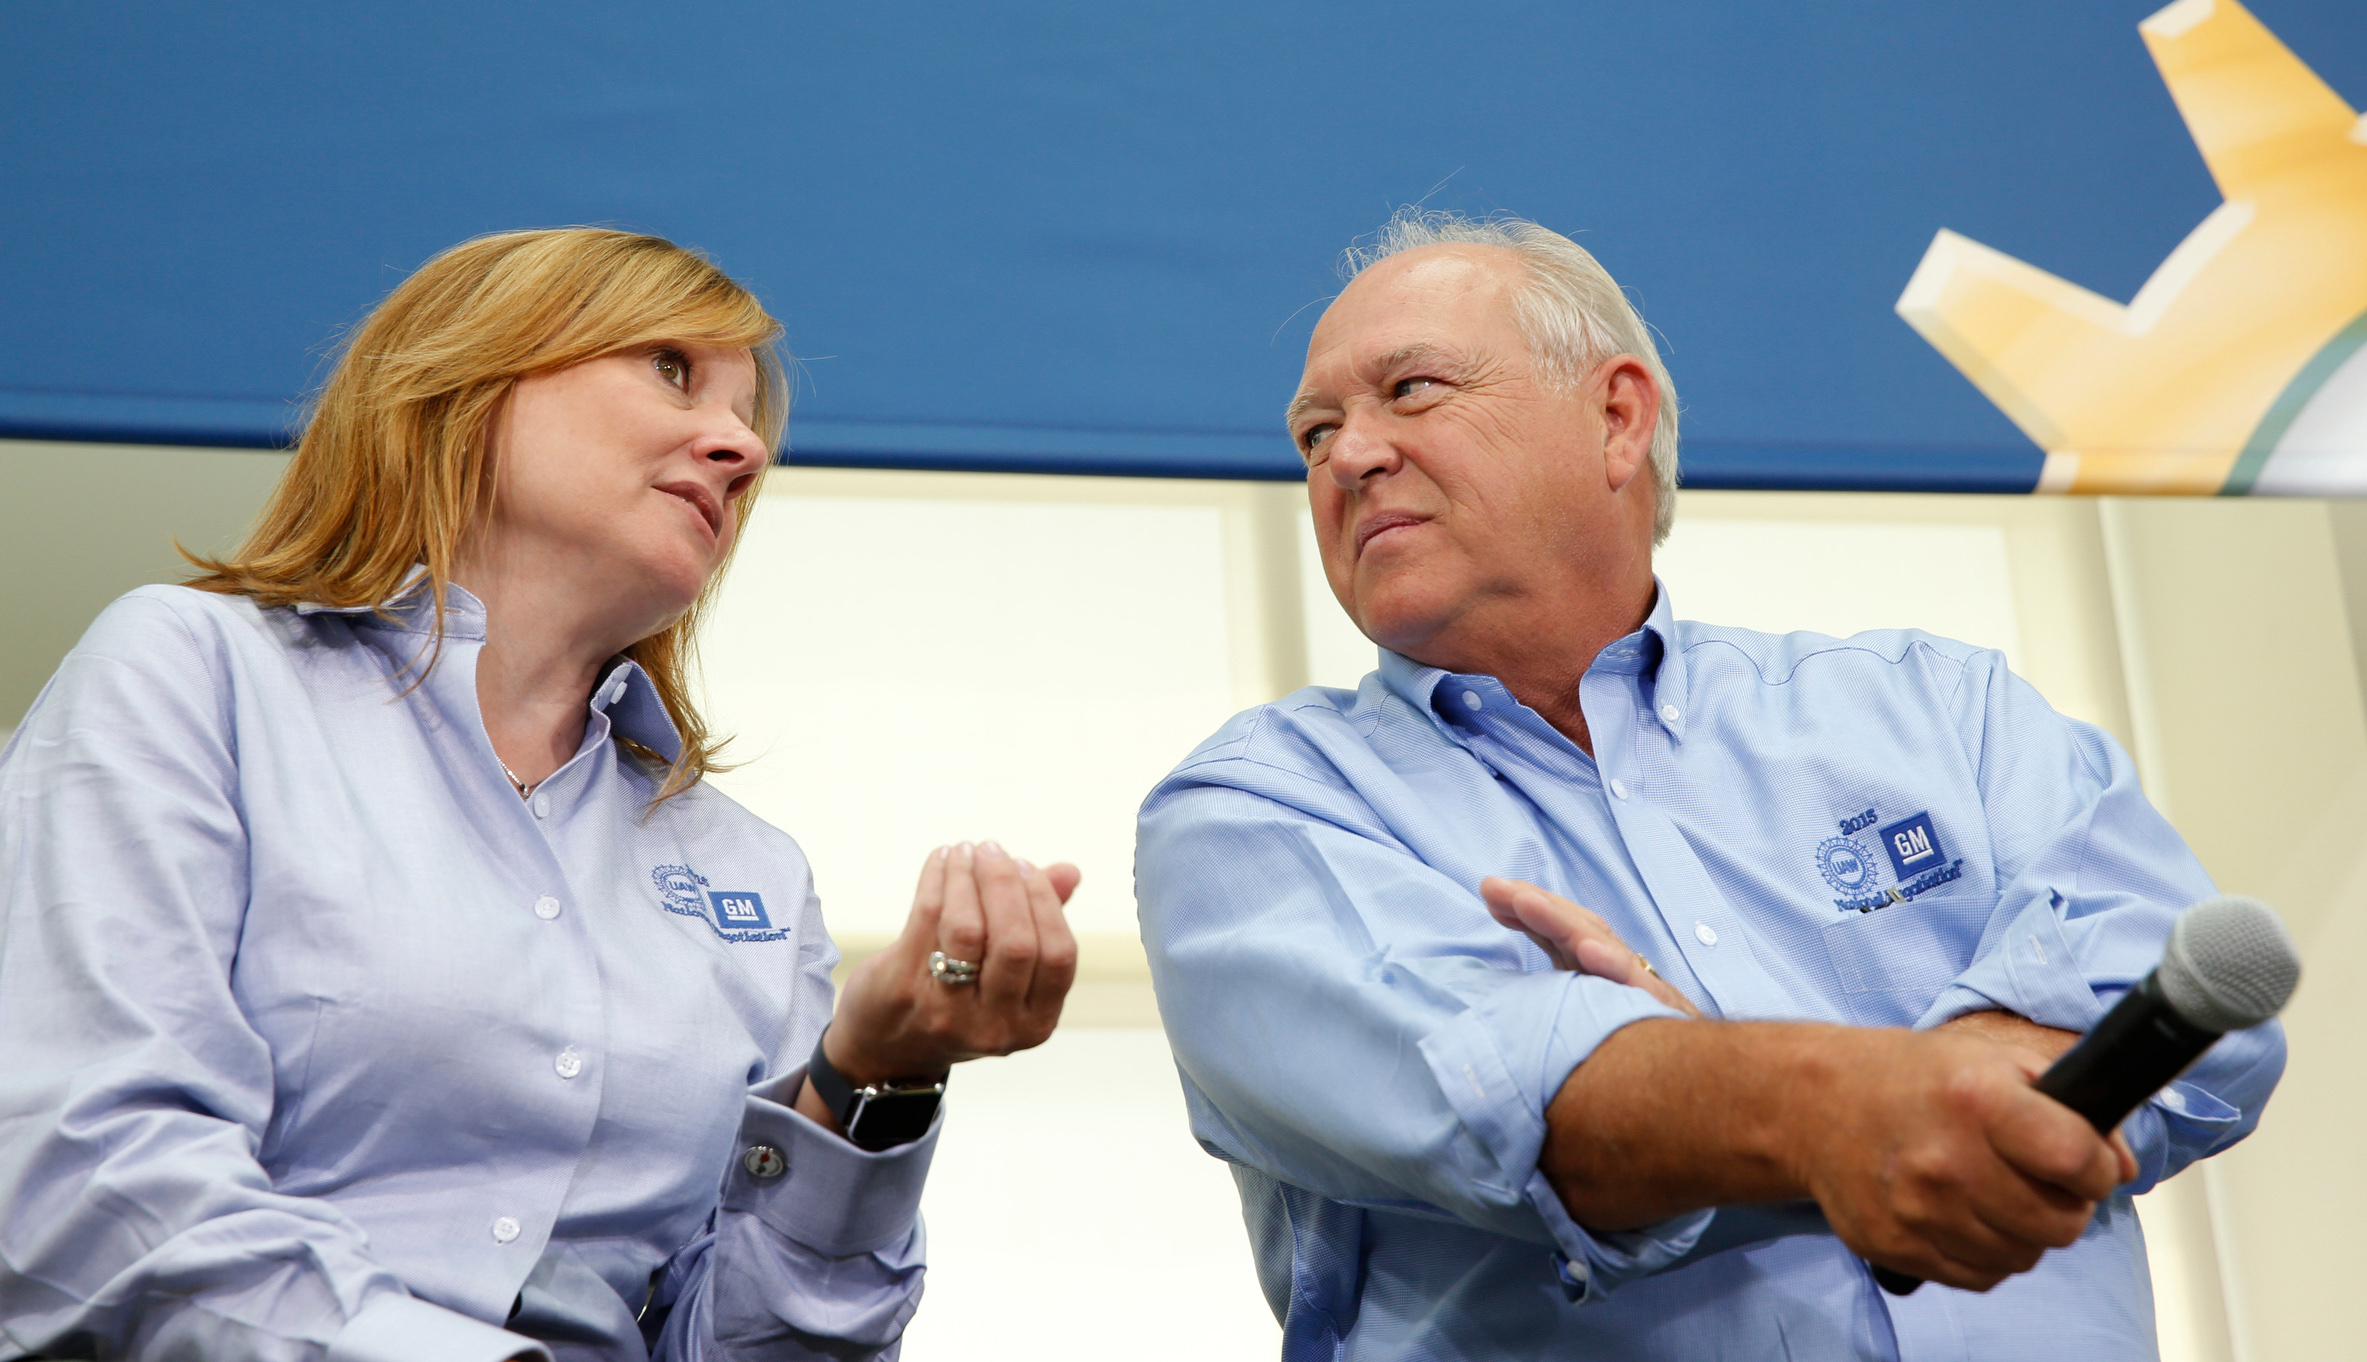 Mary Barra, GM Chief Executive Officer with Dennis Williams, President - International Union, UAW at the UAW-GM 2015 Negotiations Kick-off at the UAW-GM Center for Human Resources in Detroit, Michigan, U.S., on Monday, July 13, 2015.  Photographer: Jeff Kowalsky/Bloomberg *** Local Caption ***